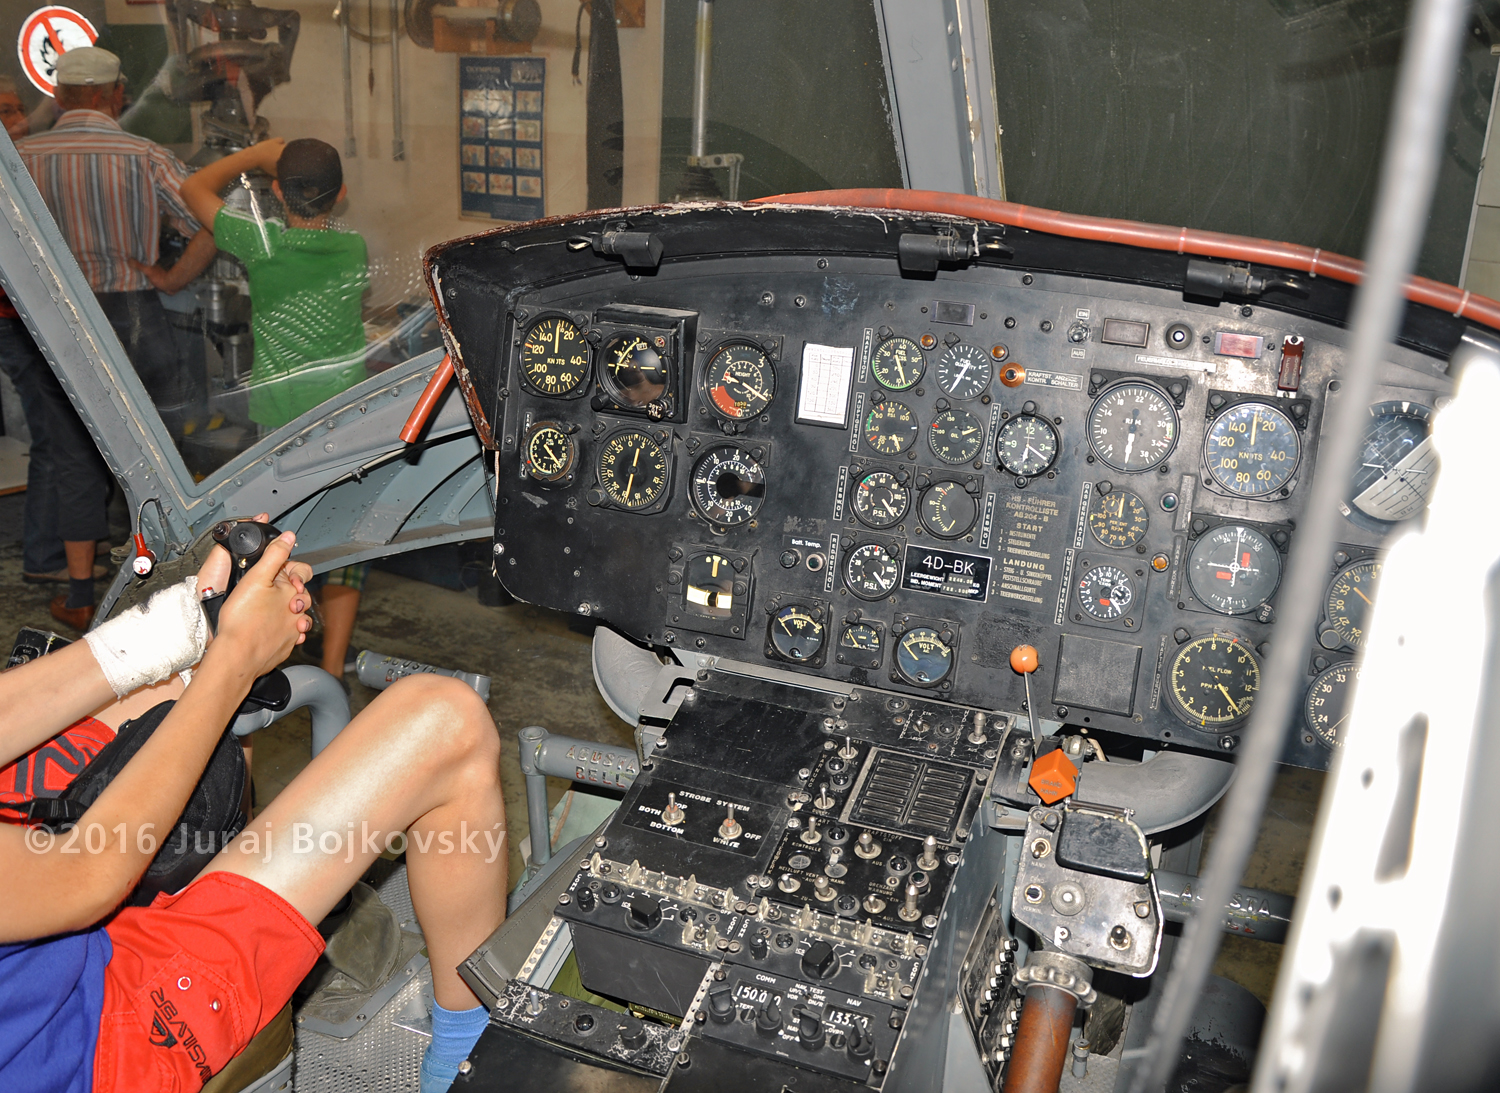 UH-1B Main Instrument panel, Left portion